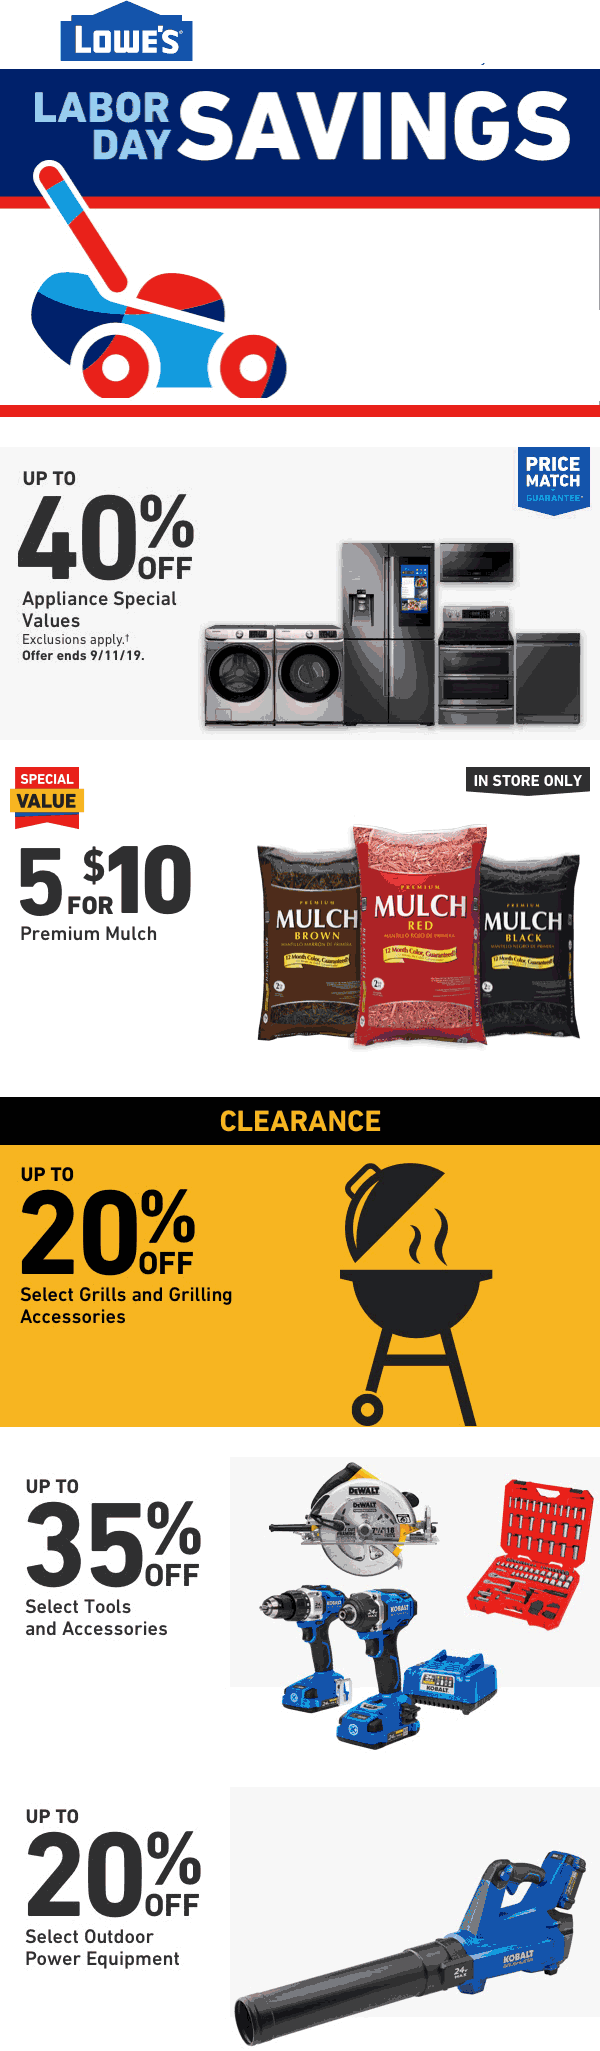 Lowes Coupon November 2019 5 for $10 on mulch bags at Lowes